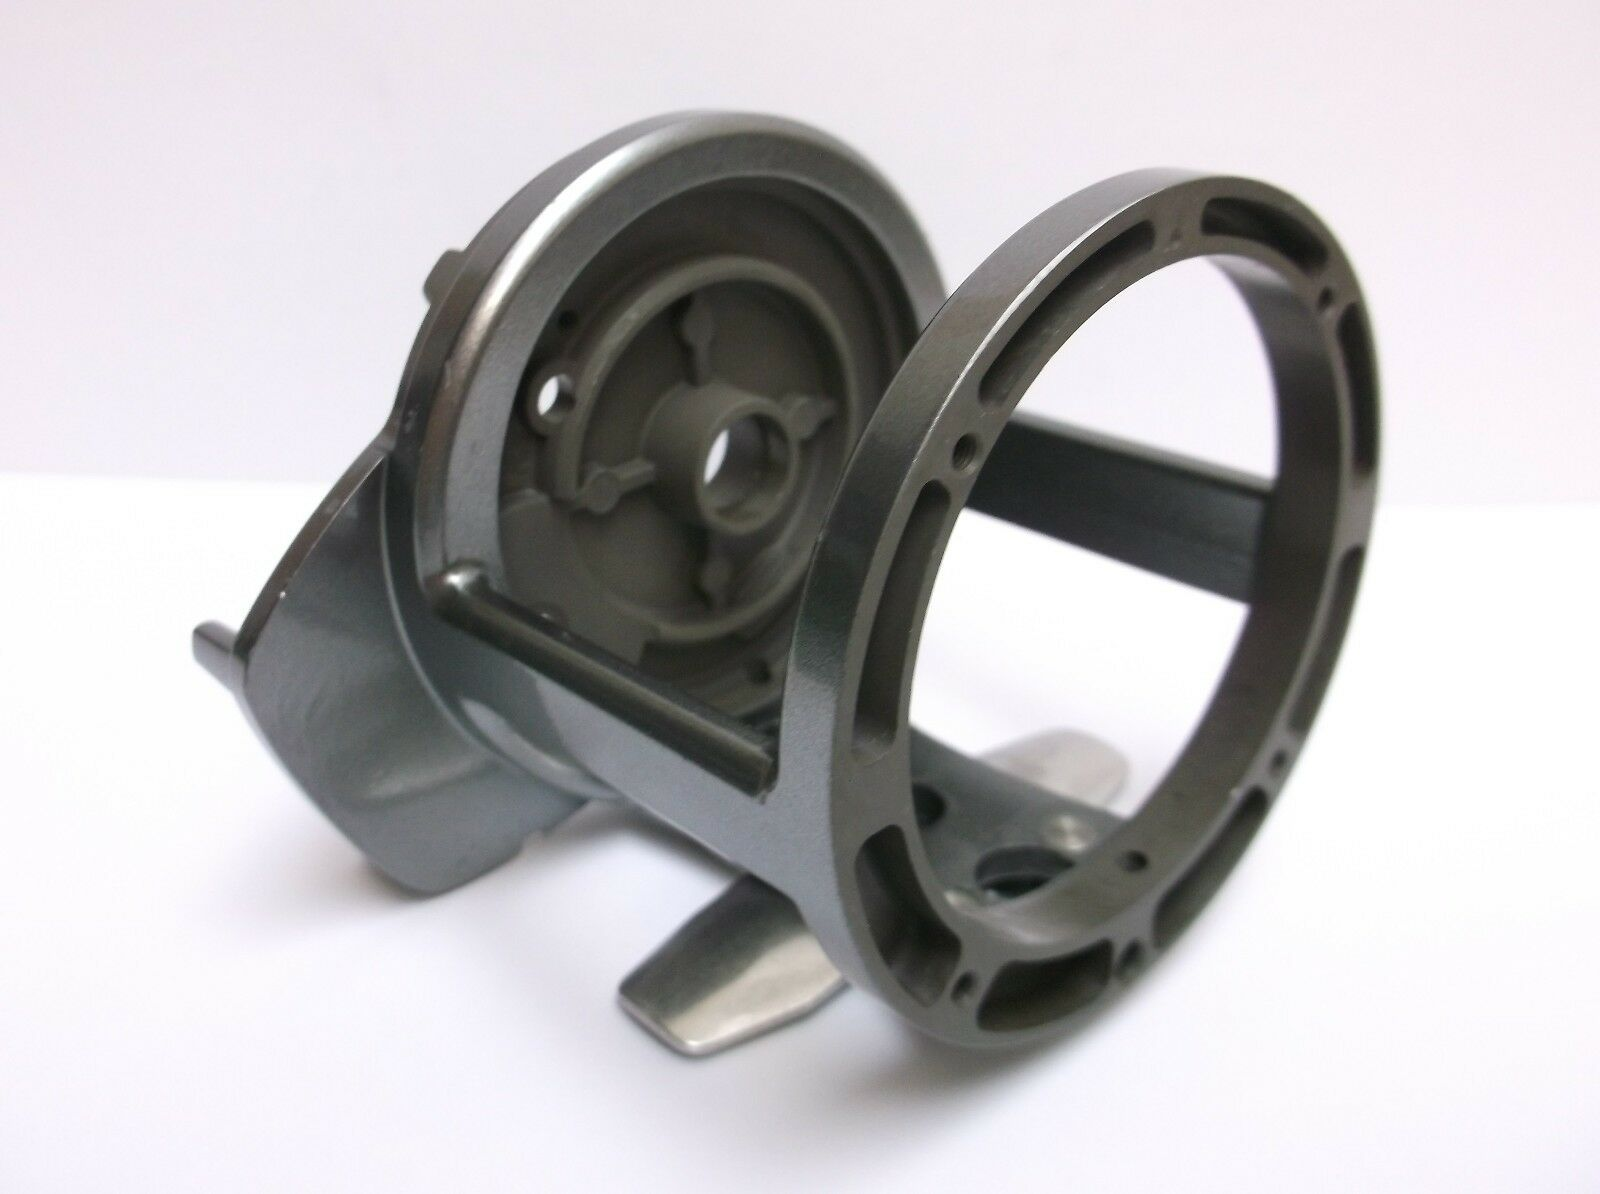 SHIuomoO CONVENTIONAL REEL PART - TGT0620 Torium 20 - One Piece Frame